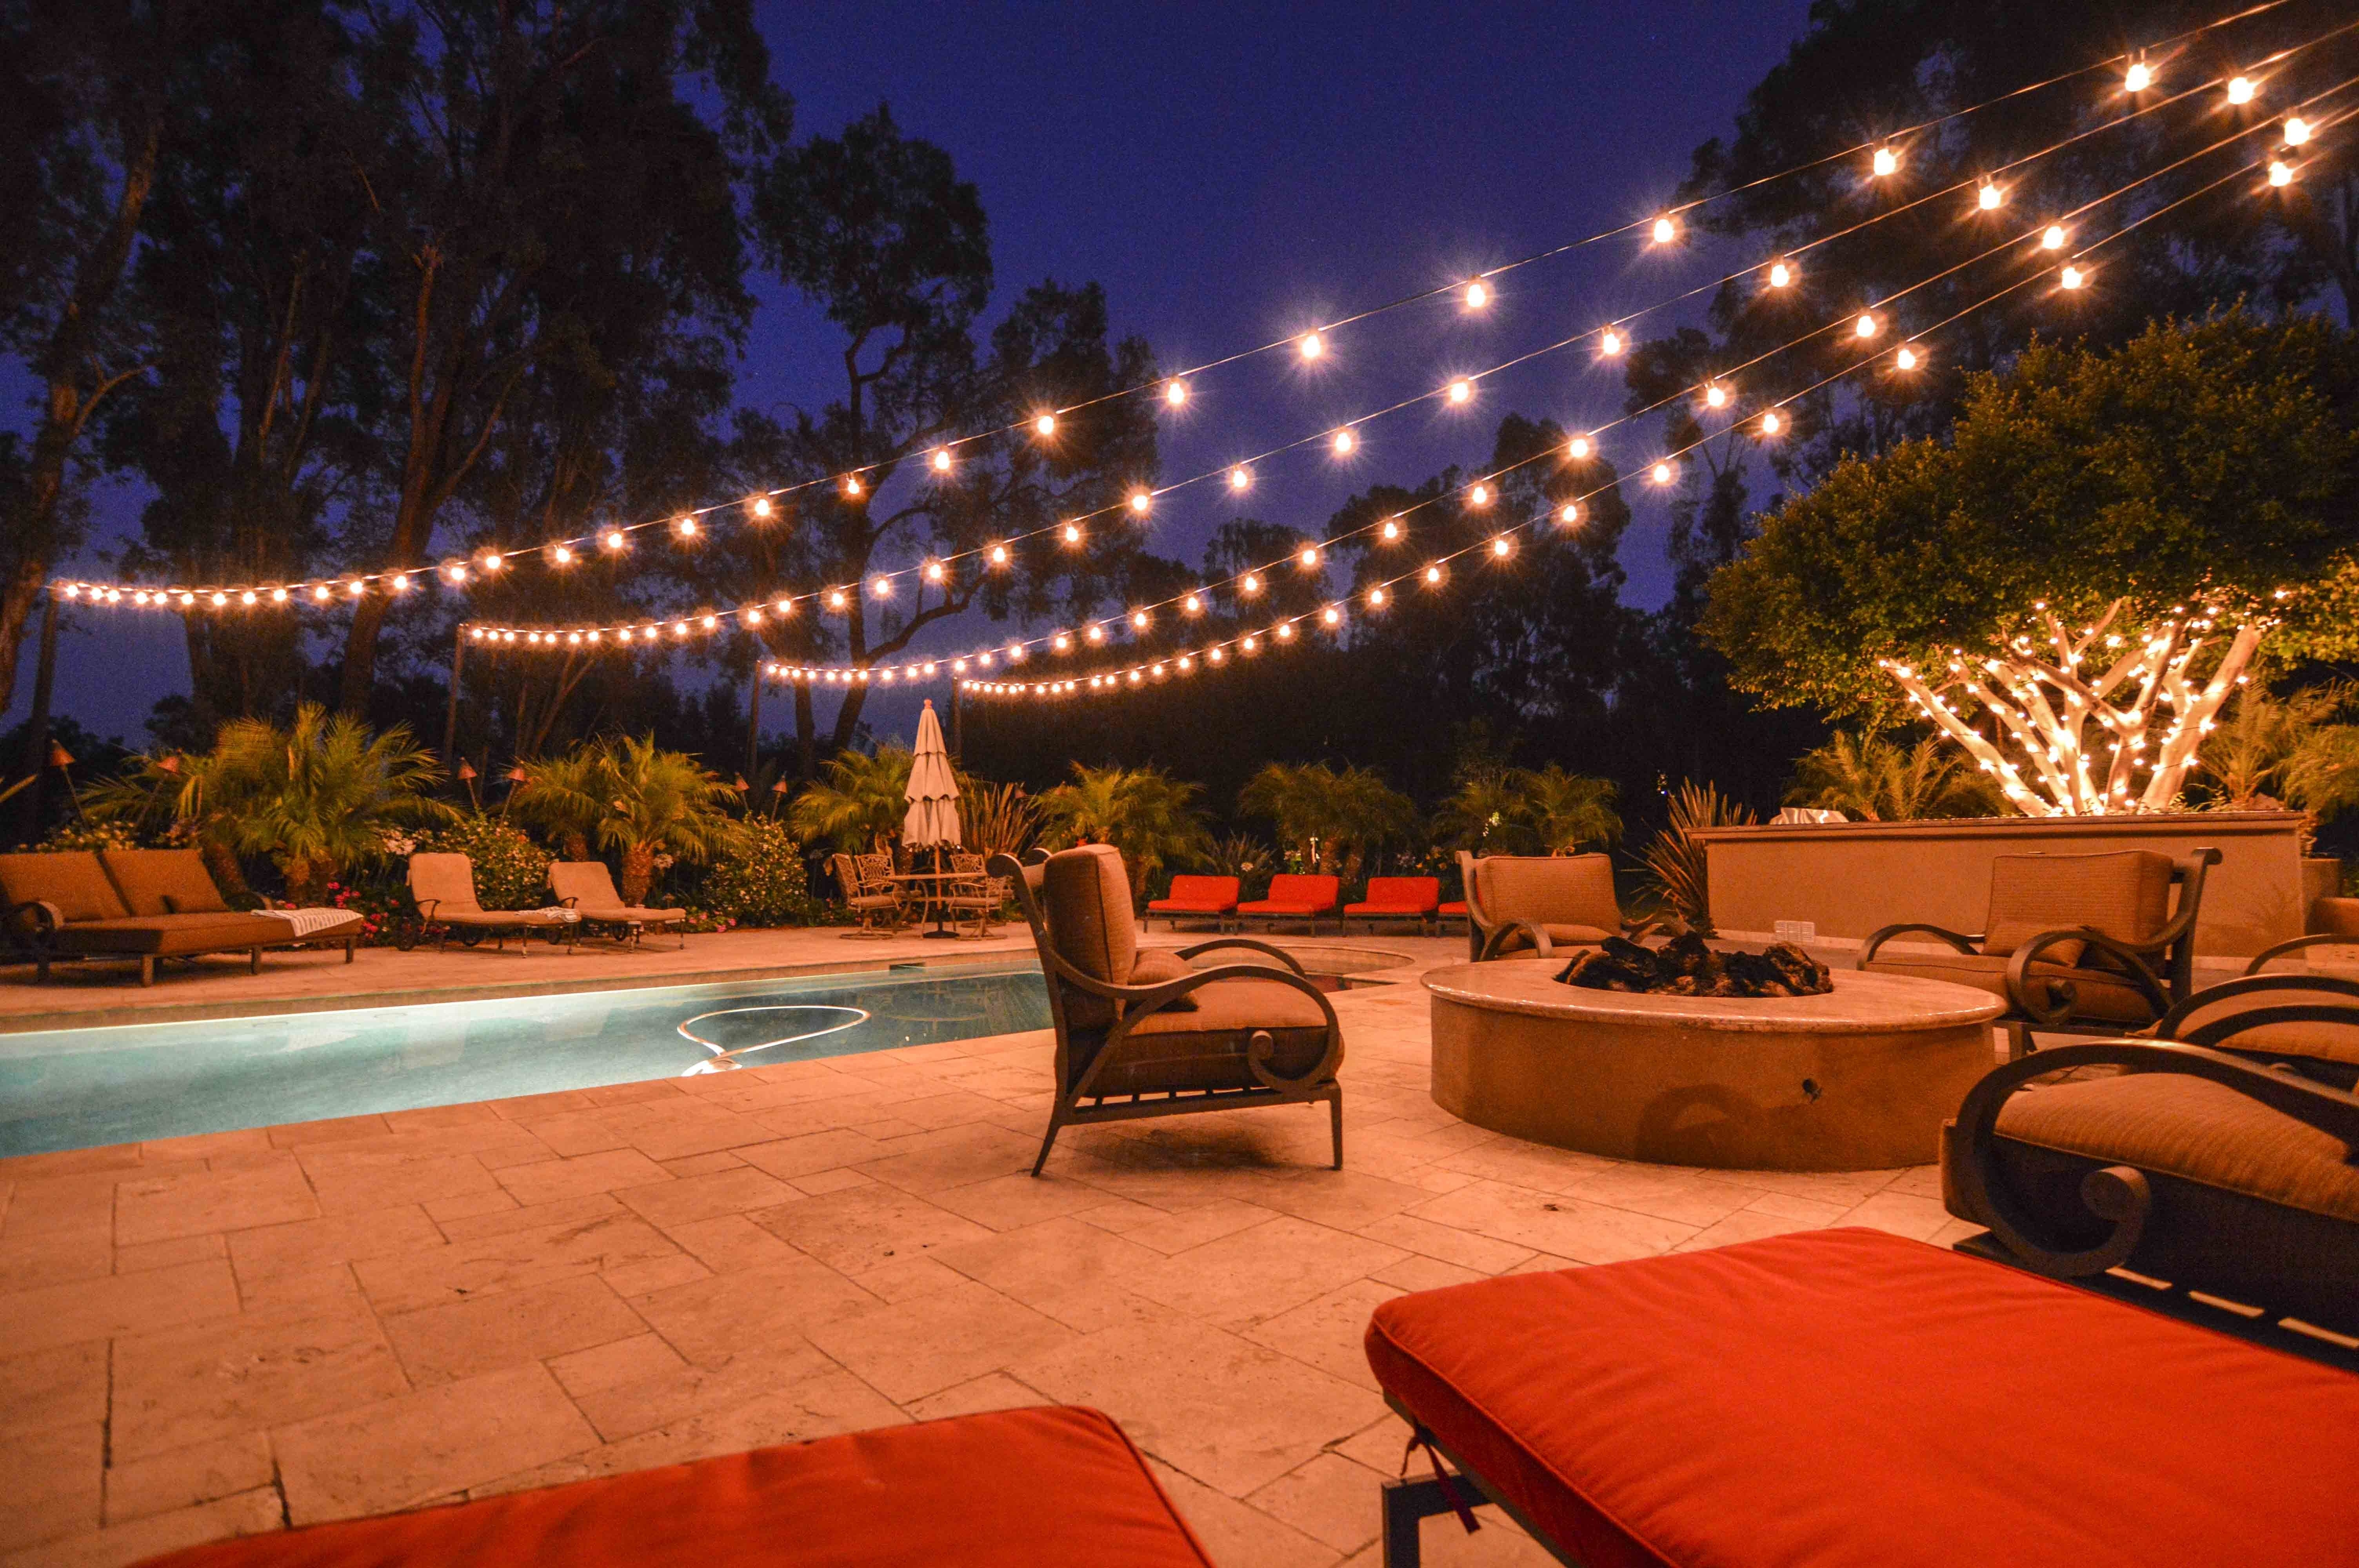 Market Lights At A Backyard Wedding In A Starburst Display Over A Within Outdoor Lanterns For Poolside (View 11 of 20)